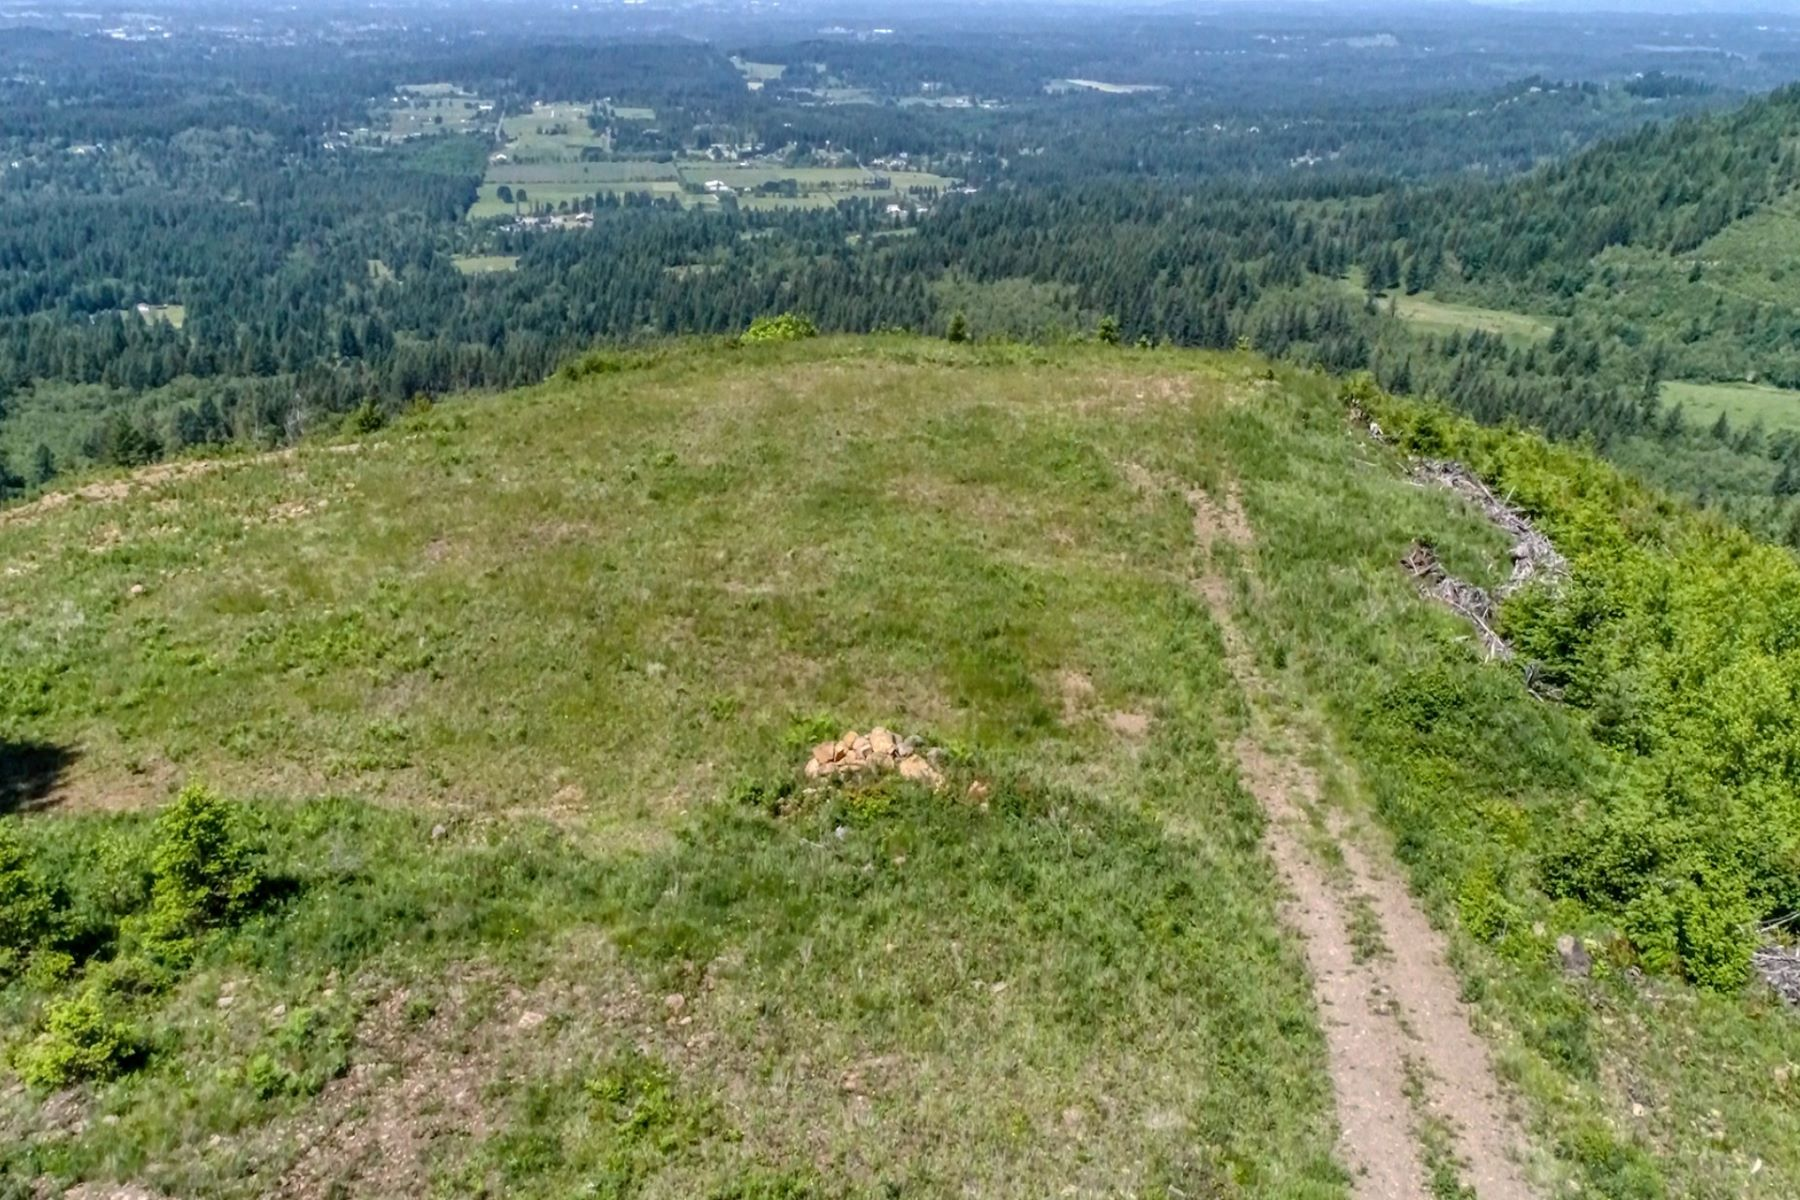 Land for Sale at 27+ Acres with Incredible Views 0 NE Alvas Rd Battle Ground, Washington 98604 United States